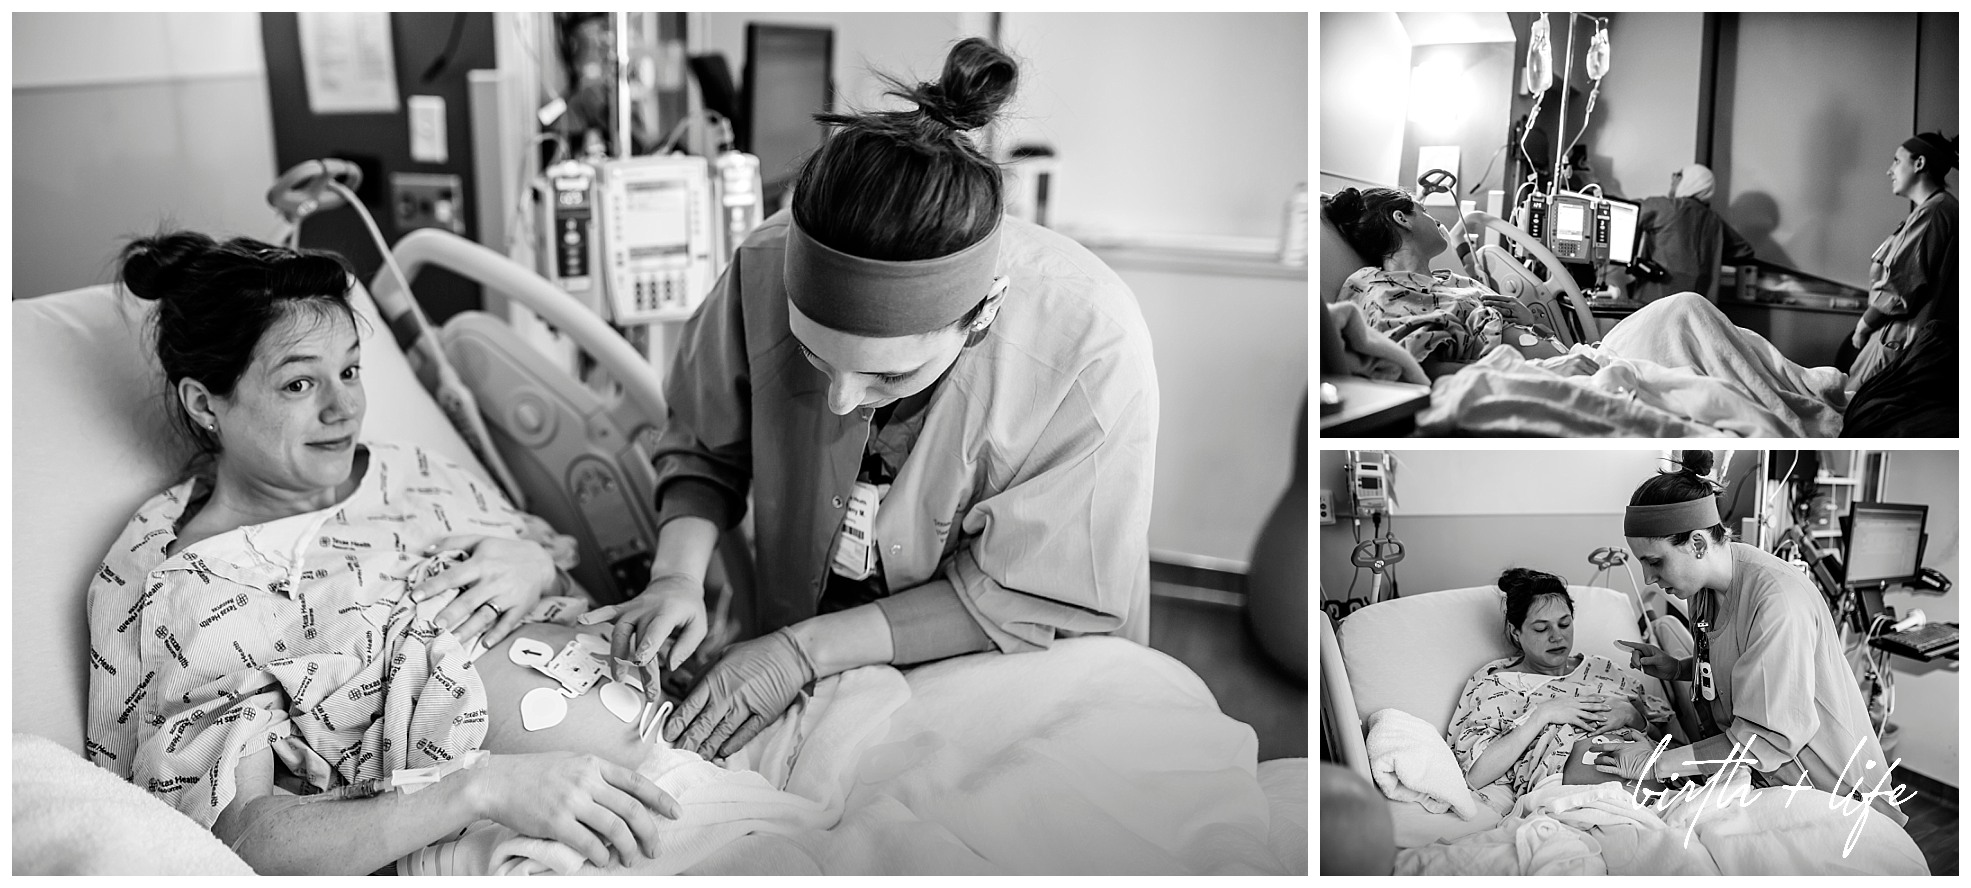 dfw-birth-and-life-photography-family-photojournalism-documentary-birth-storyacclaim-midwives-clark011.jpg